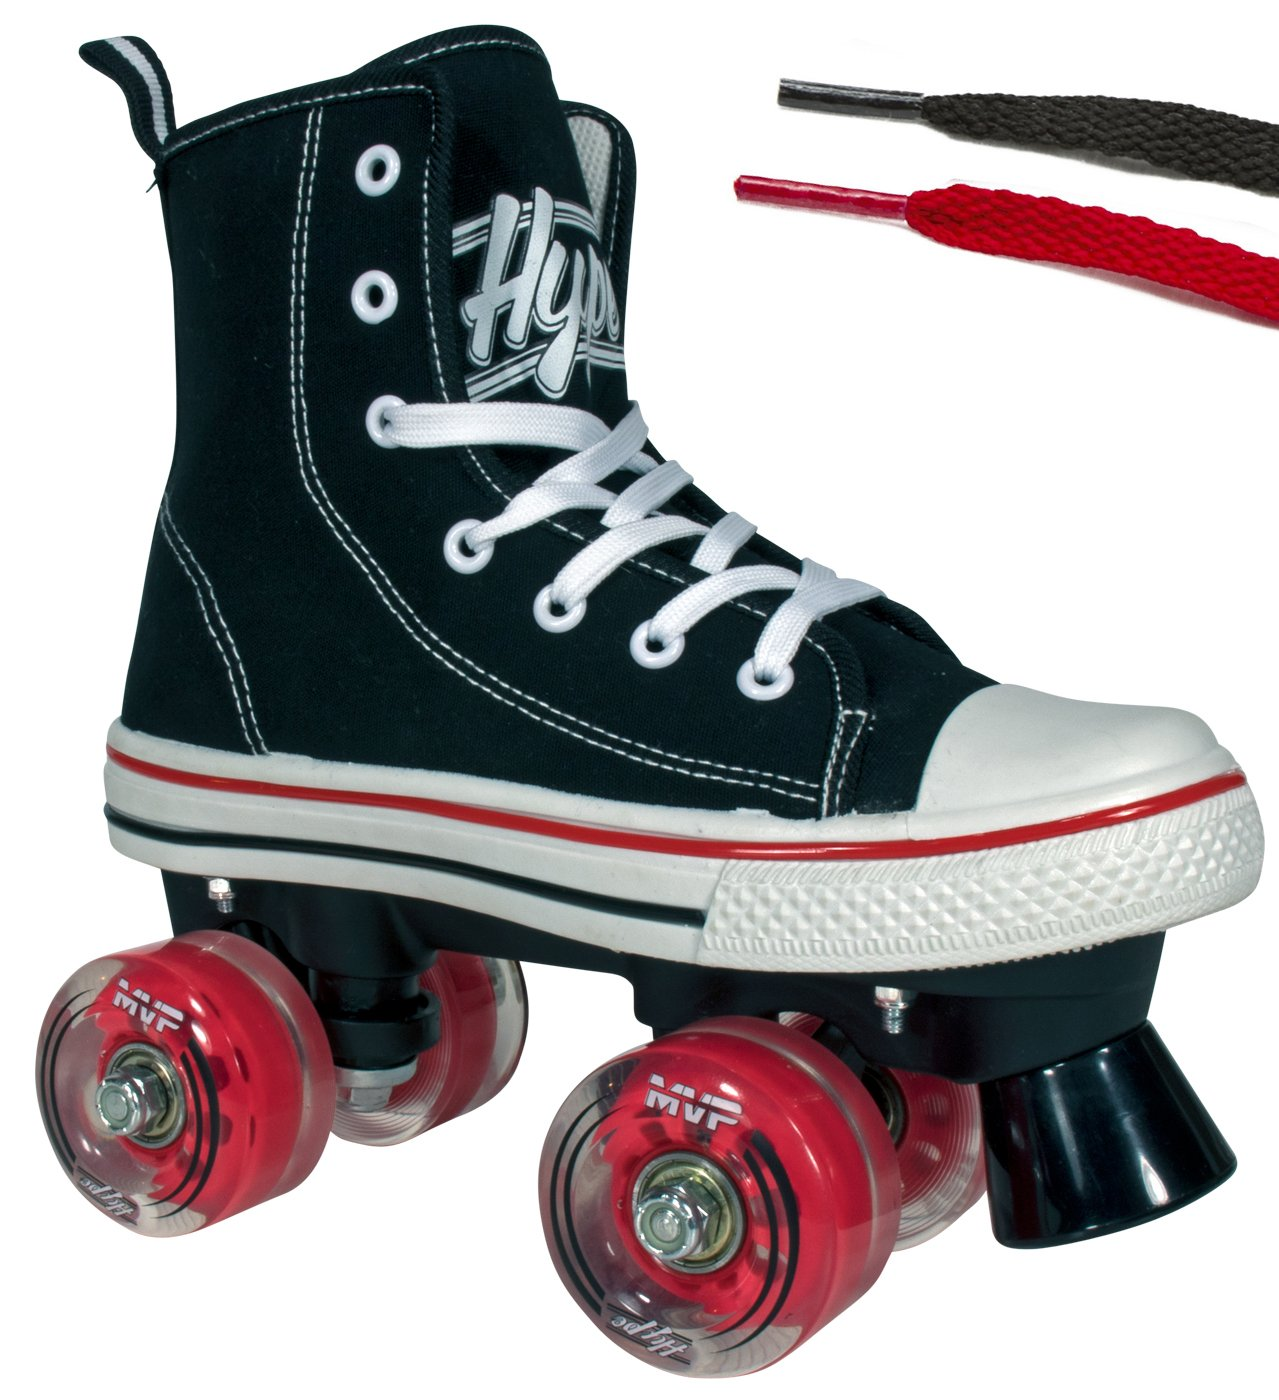 Hype Roller Skates for Girls and Boys MVP Kid's Unisex Quad Roller Skates with High Top Shoe Style for Indoor/Outdoor (Black & Red, 3)